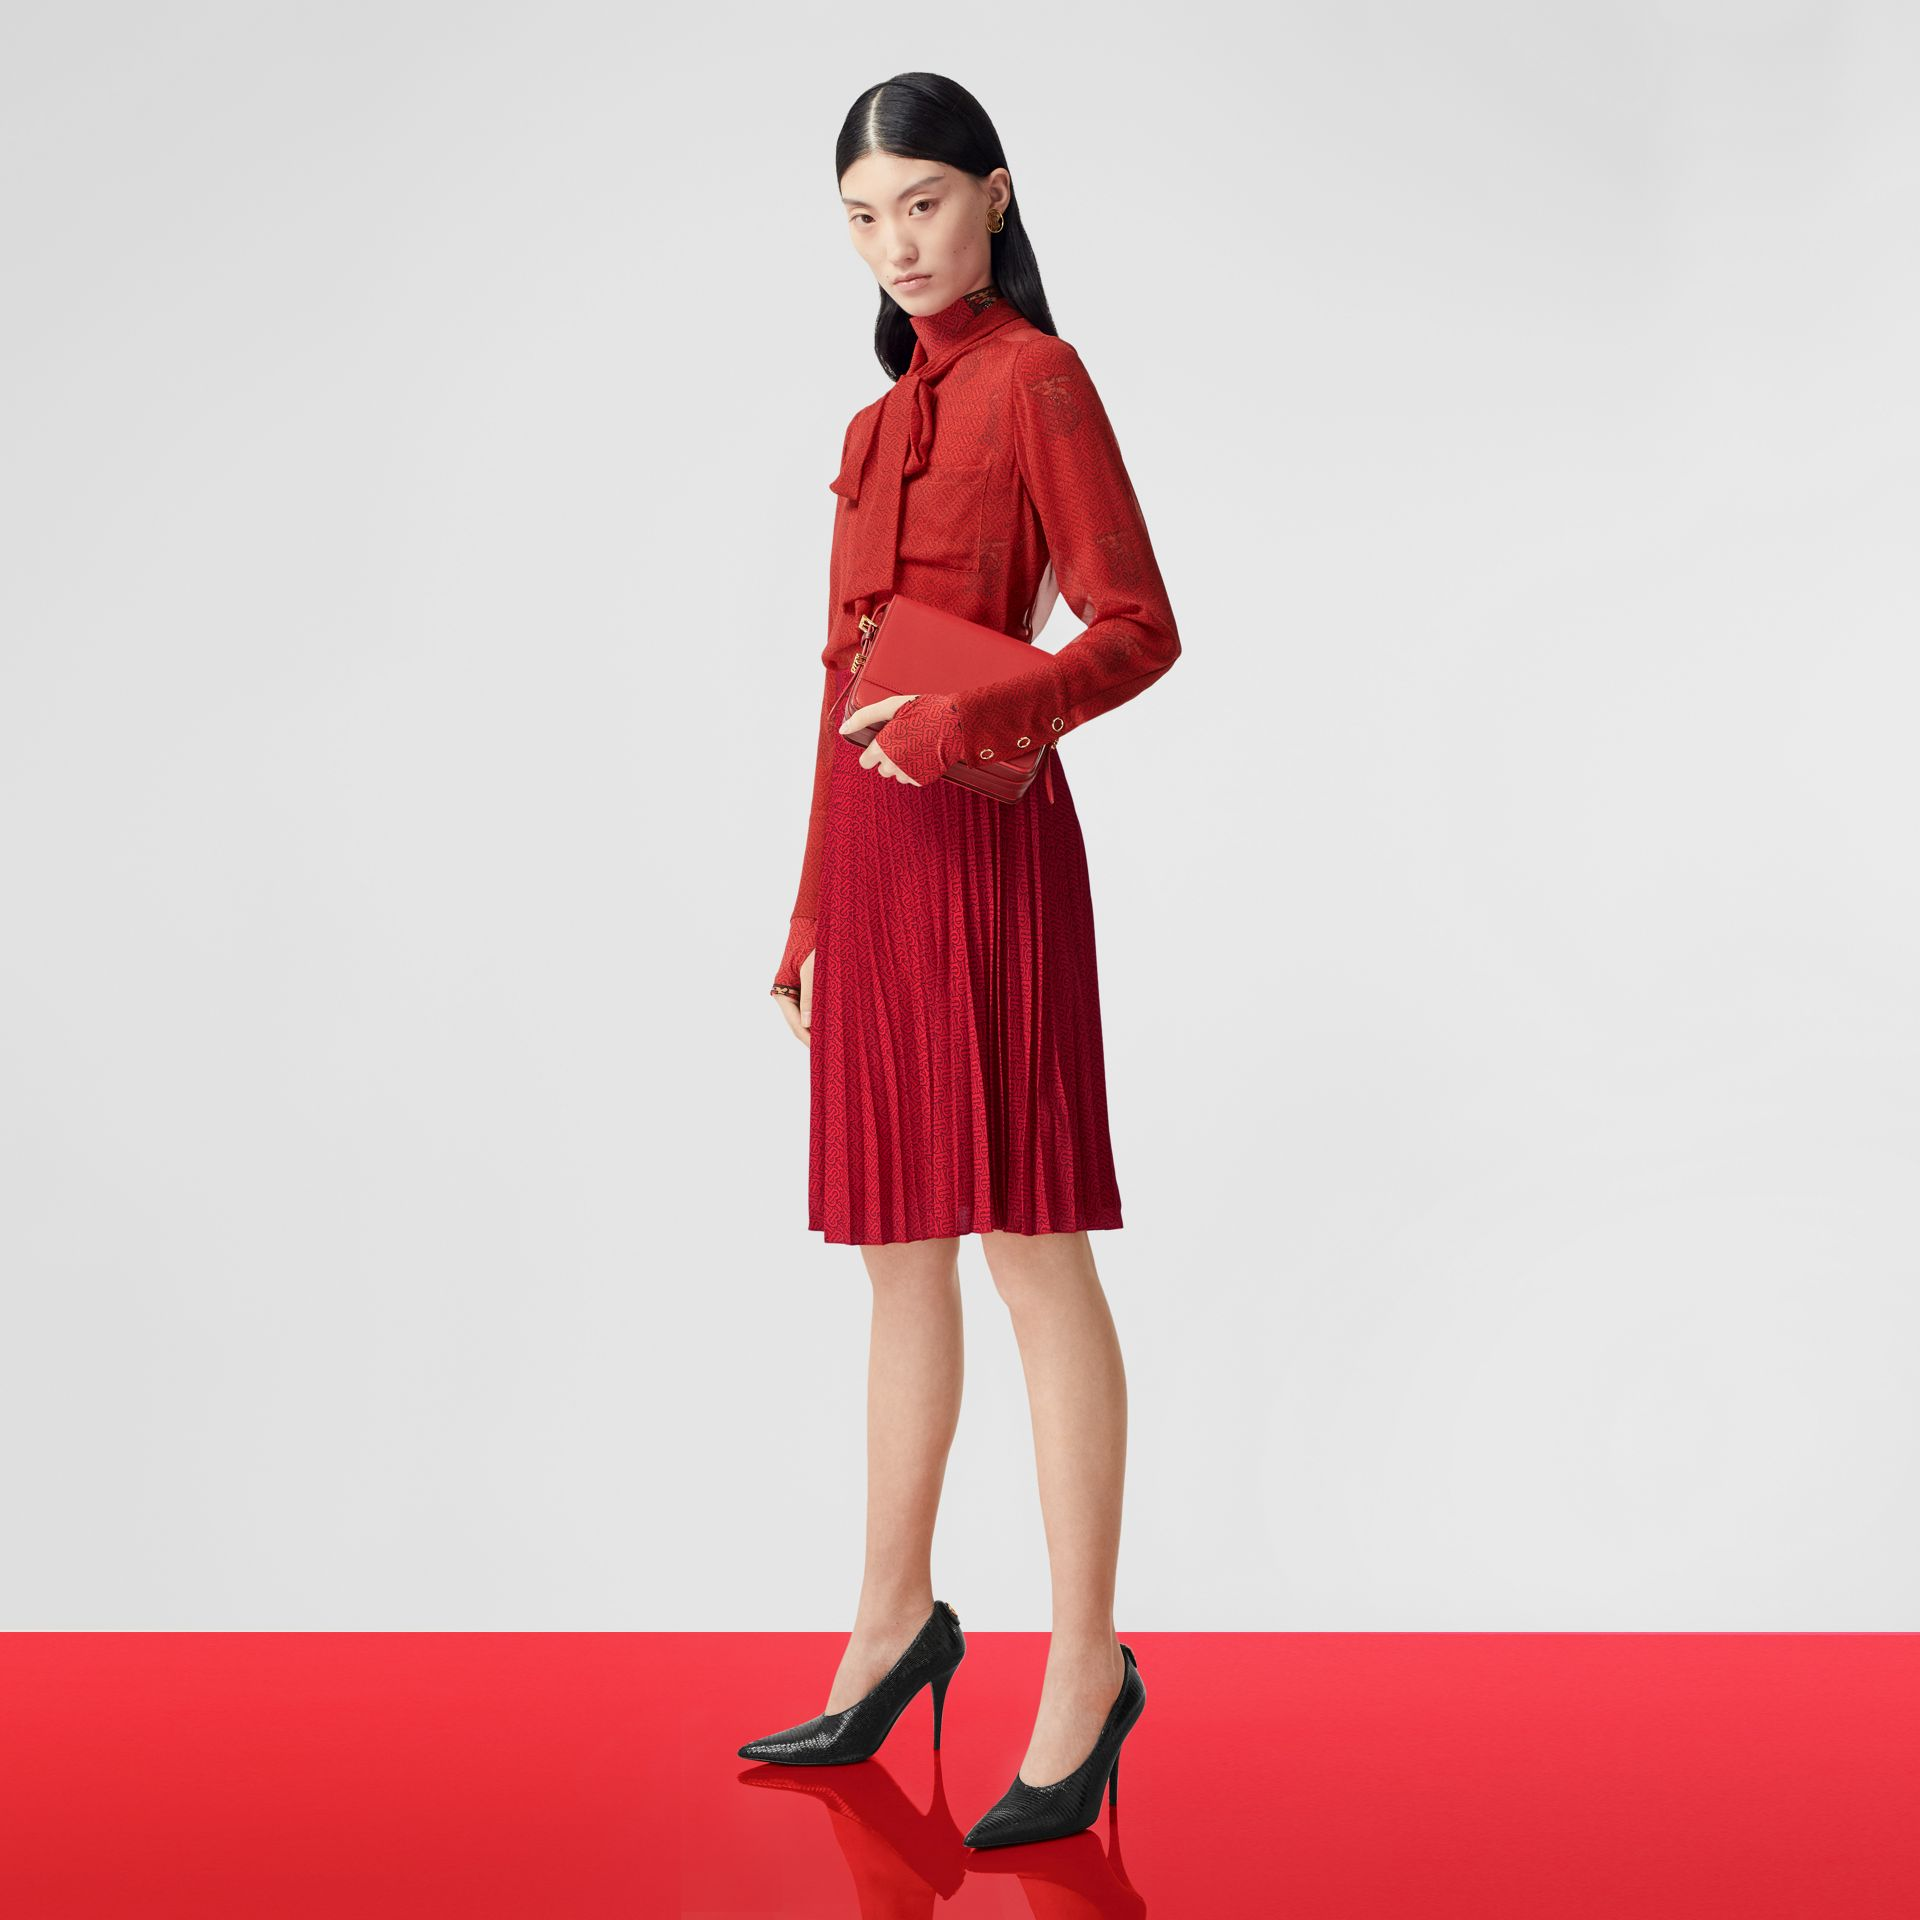 Monogram Print Pleated Skirt in Bright Red - Women | Burberry - gallery image 5